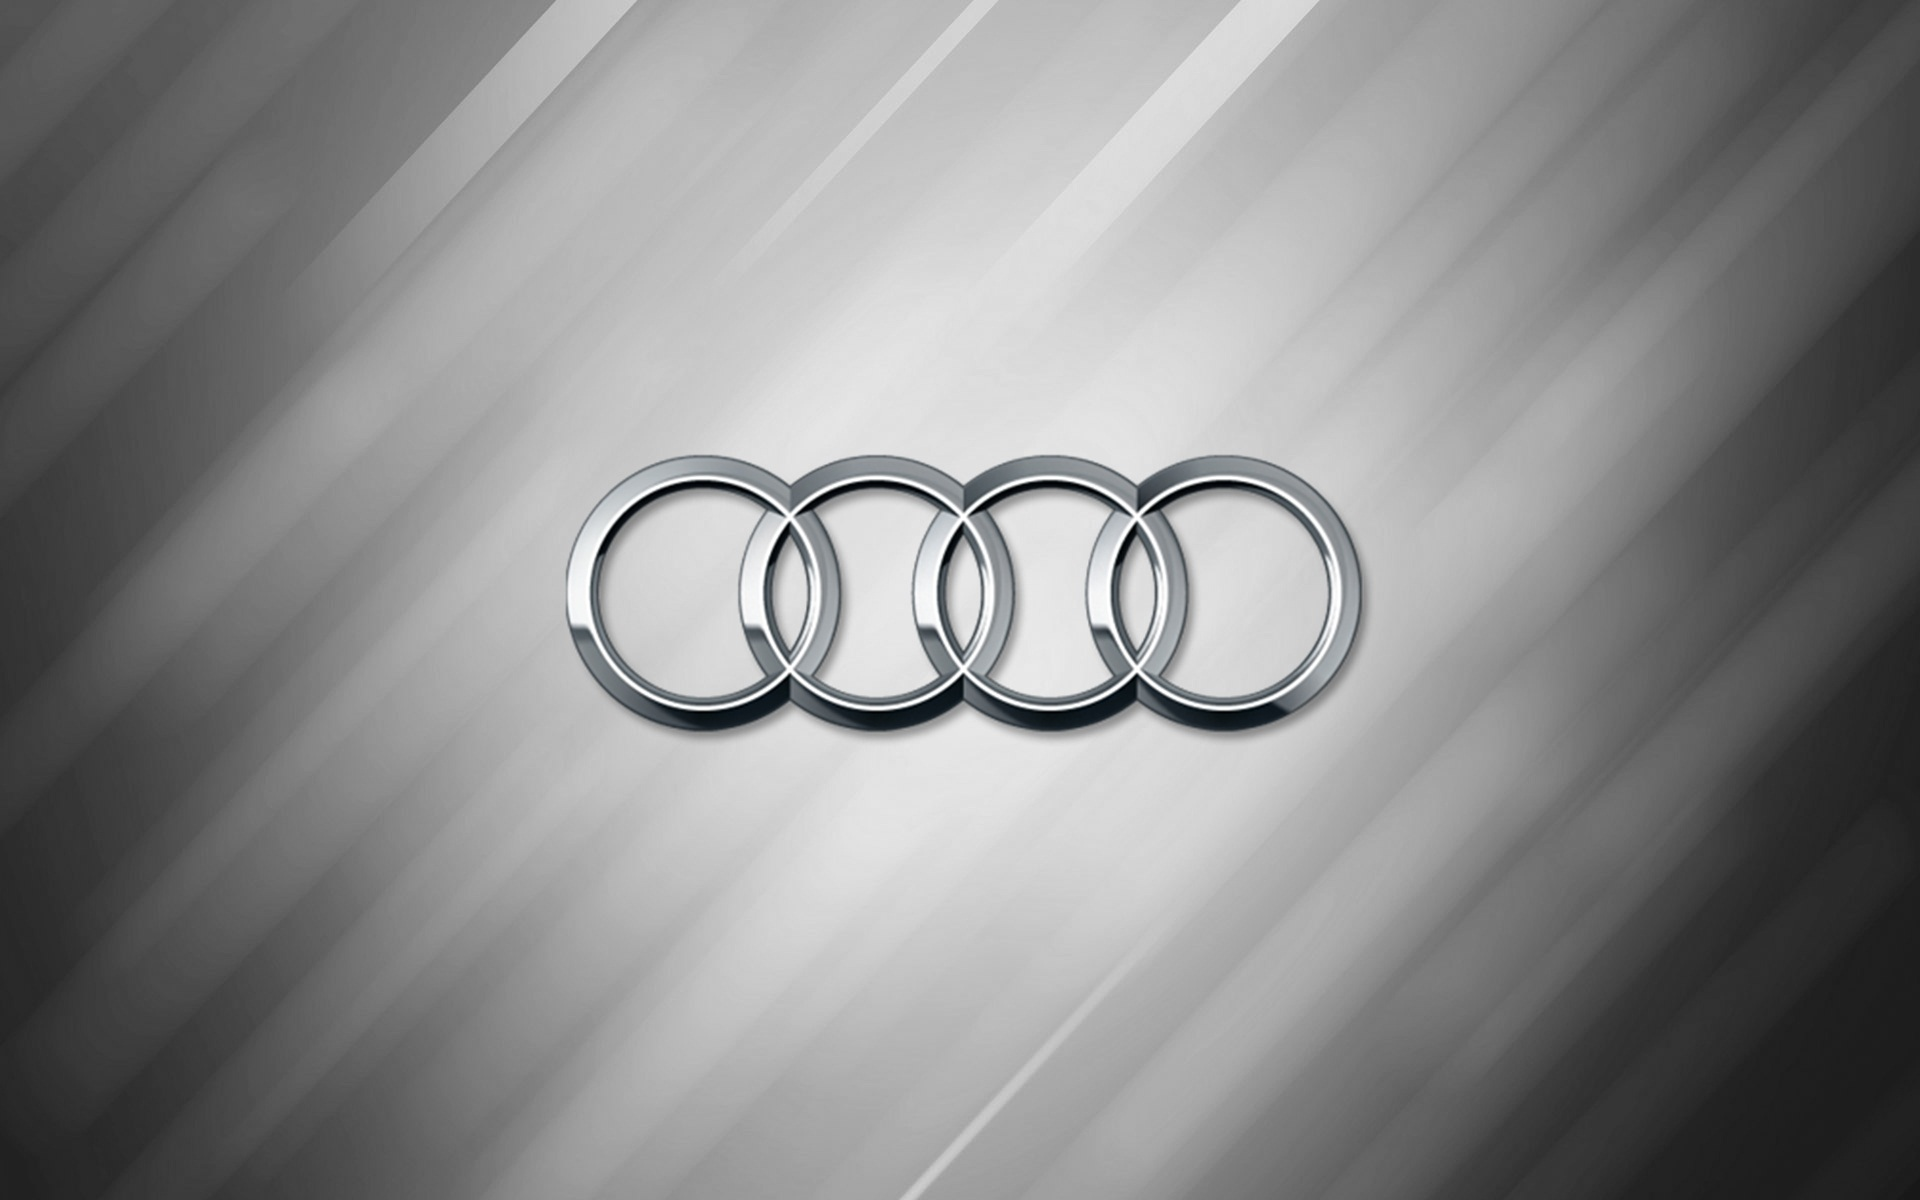 audi logo silver widescreen computer background 1075